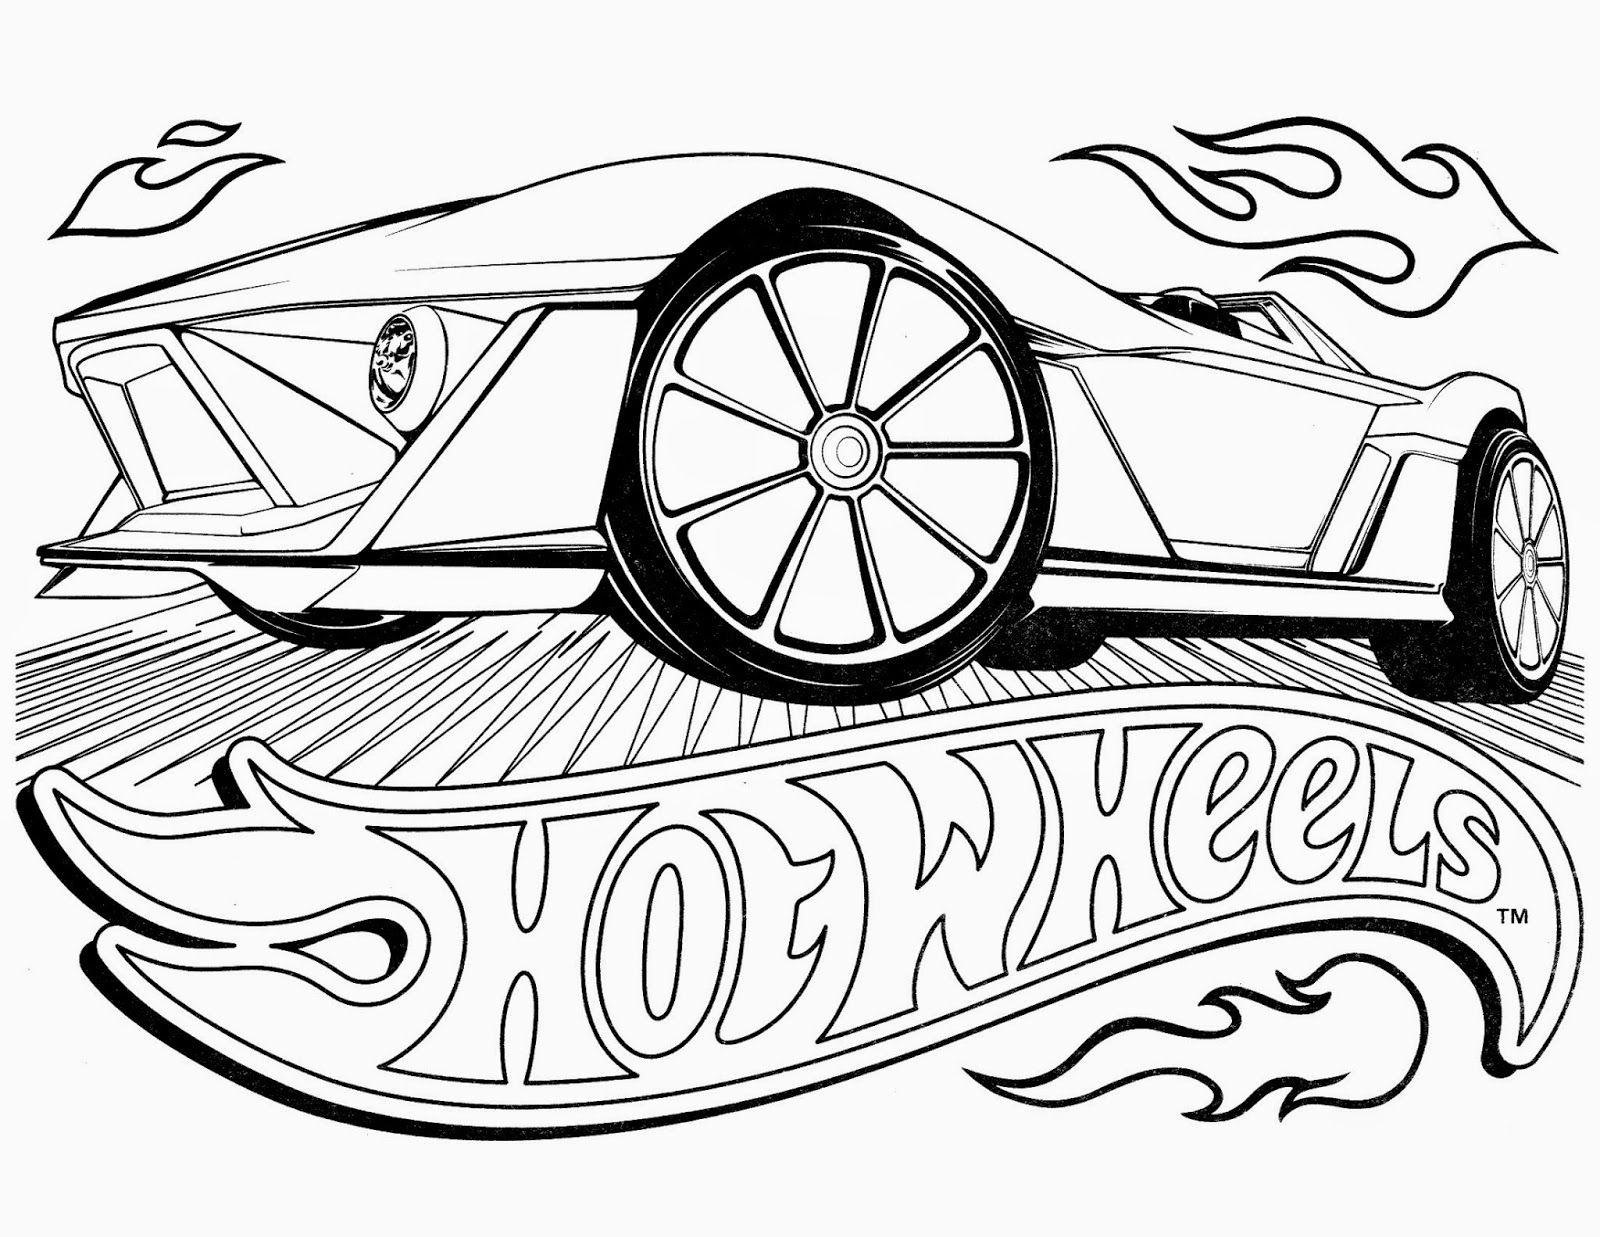 hot wheels images to print hot wheels racing league hot wheels coloring pages set 5 wheels hot print to images